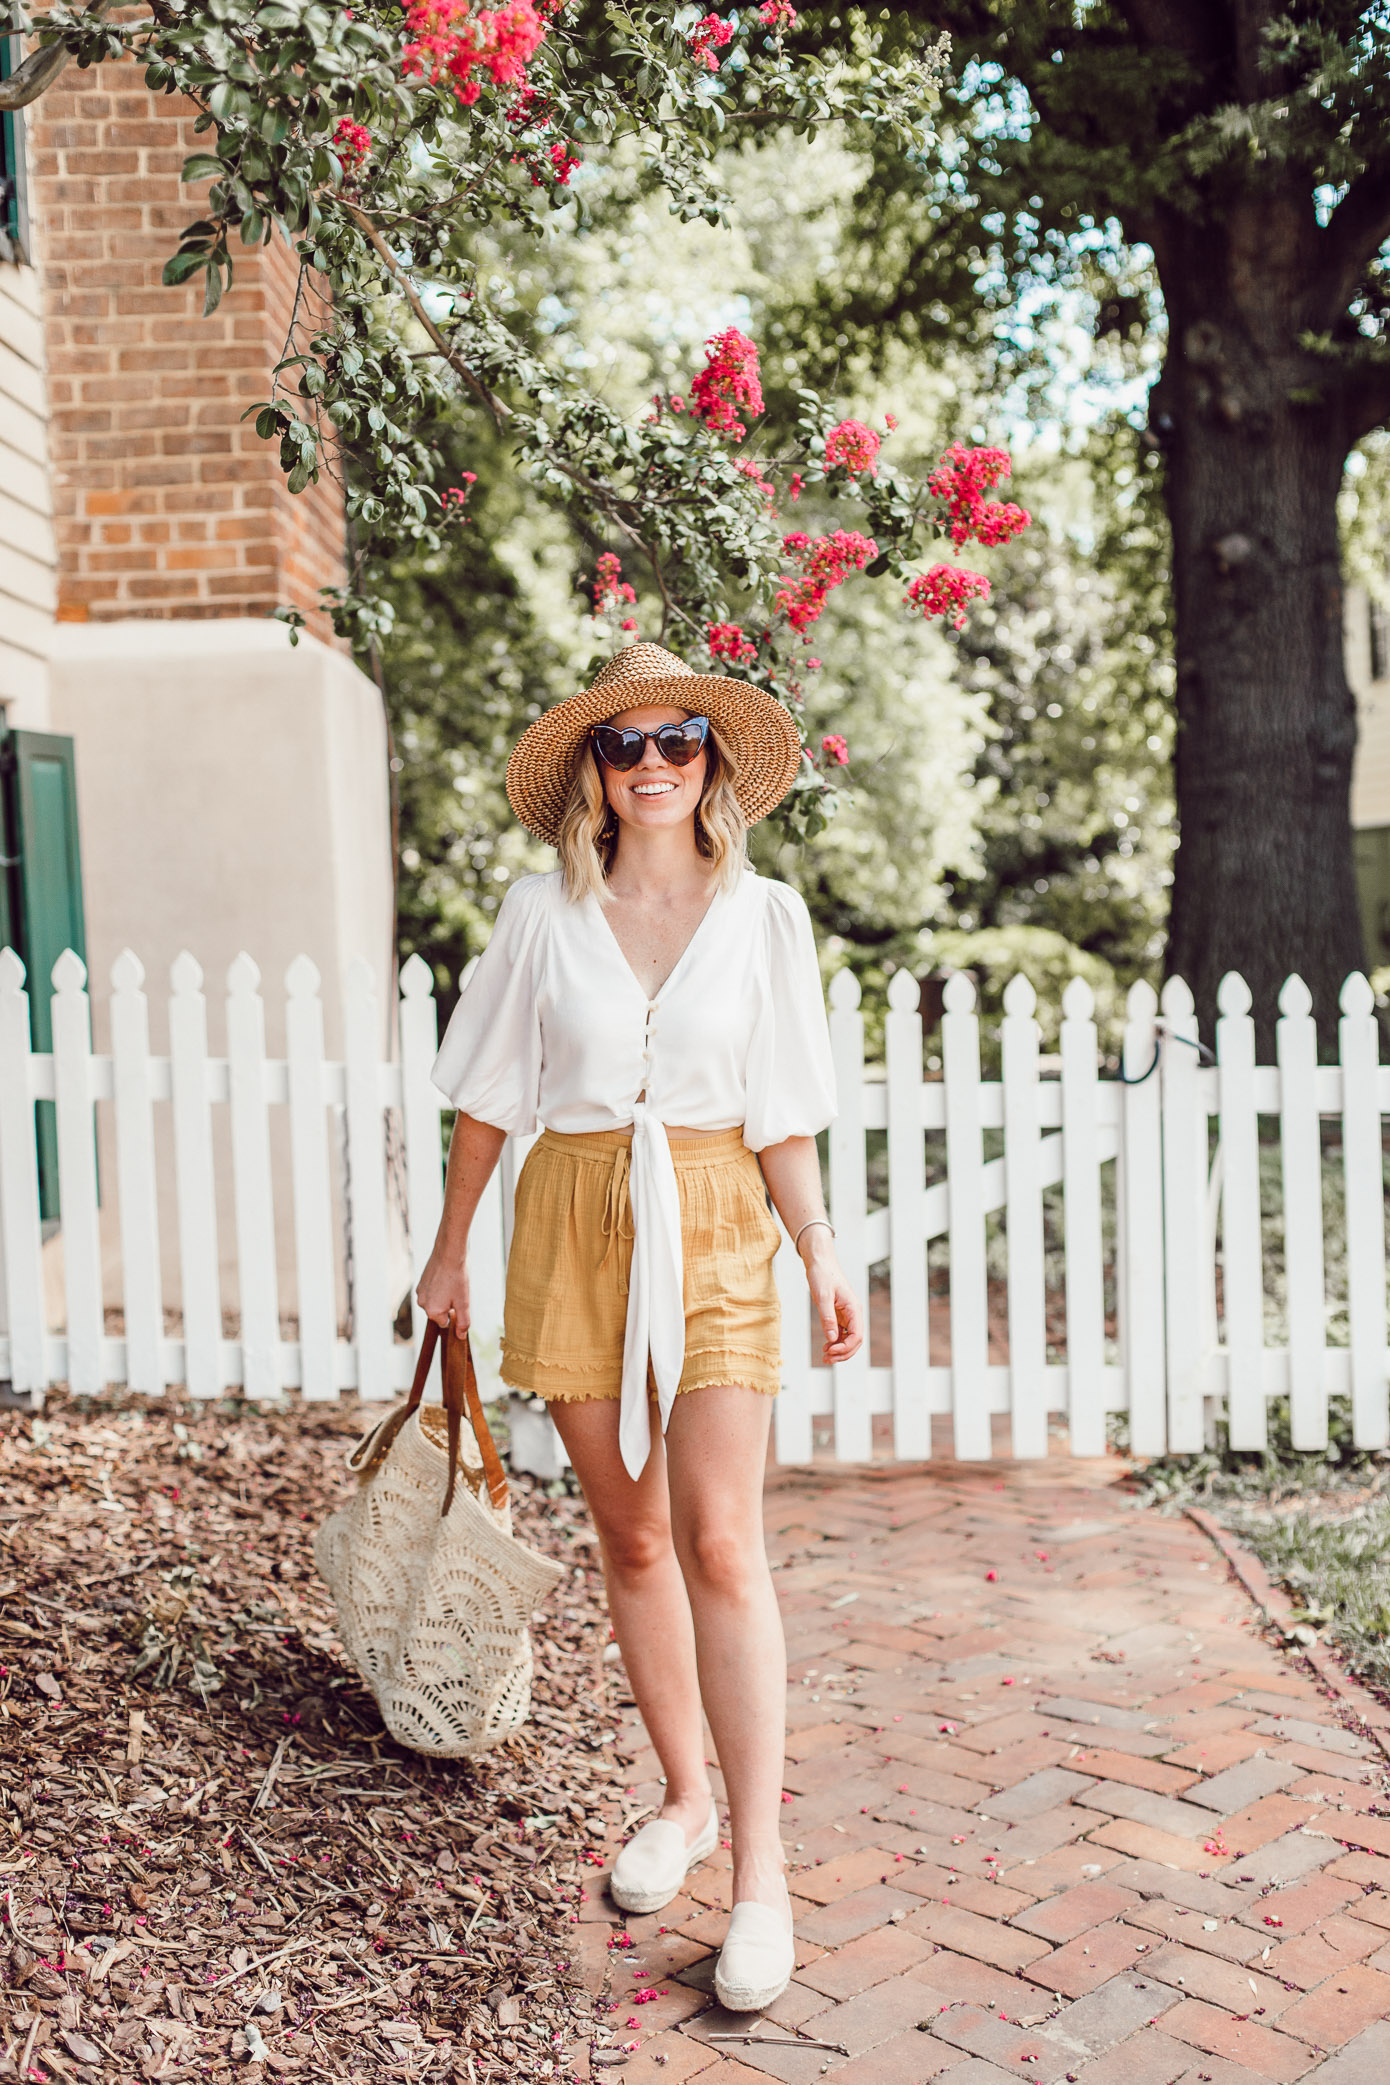 Winston-Salem Outfits - Everything I wore to explore Winston-Salem | White Tie Front Crop Top, Yellow High-Waisted Shorts | Louella Reese